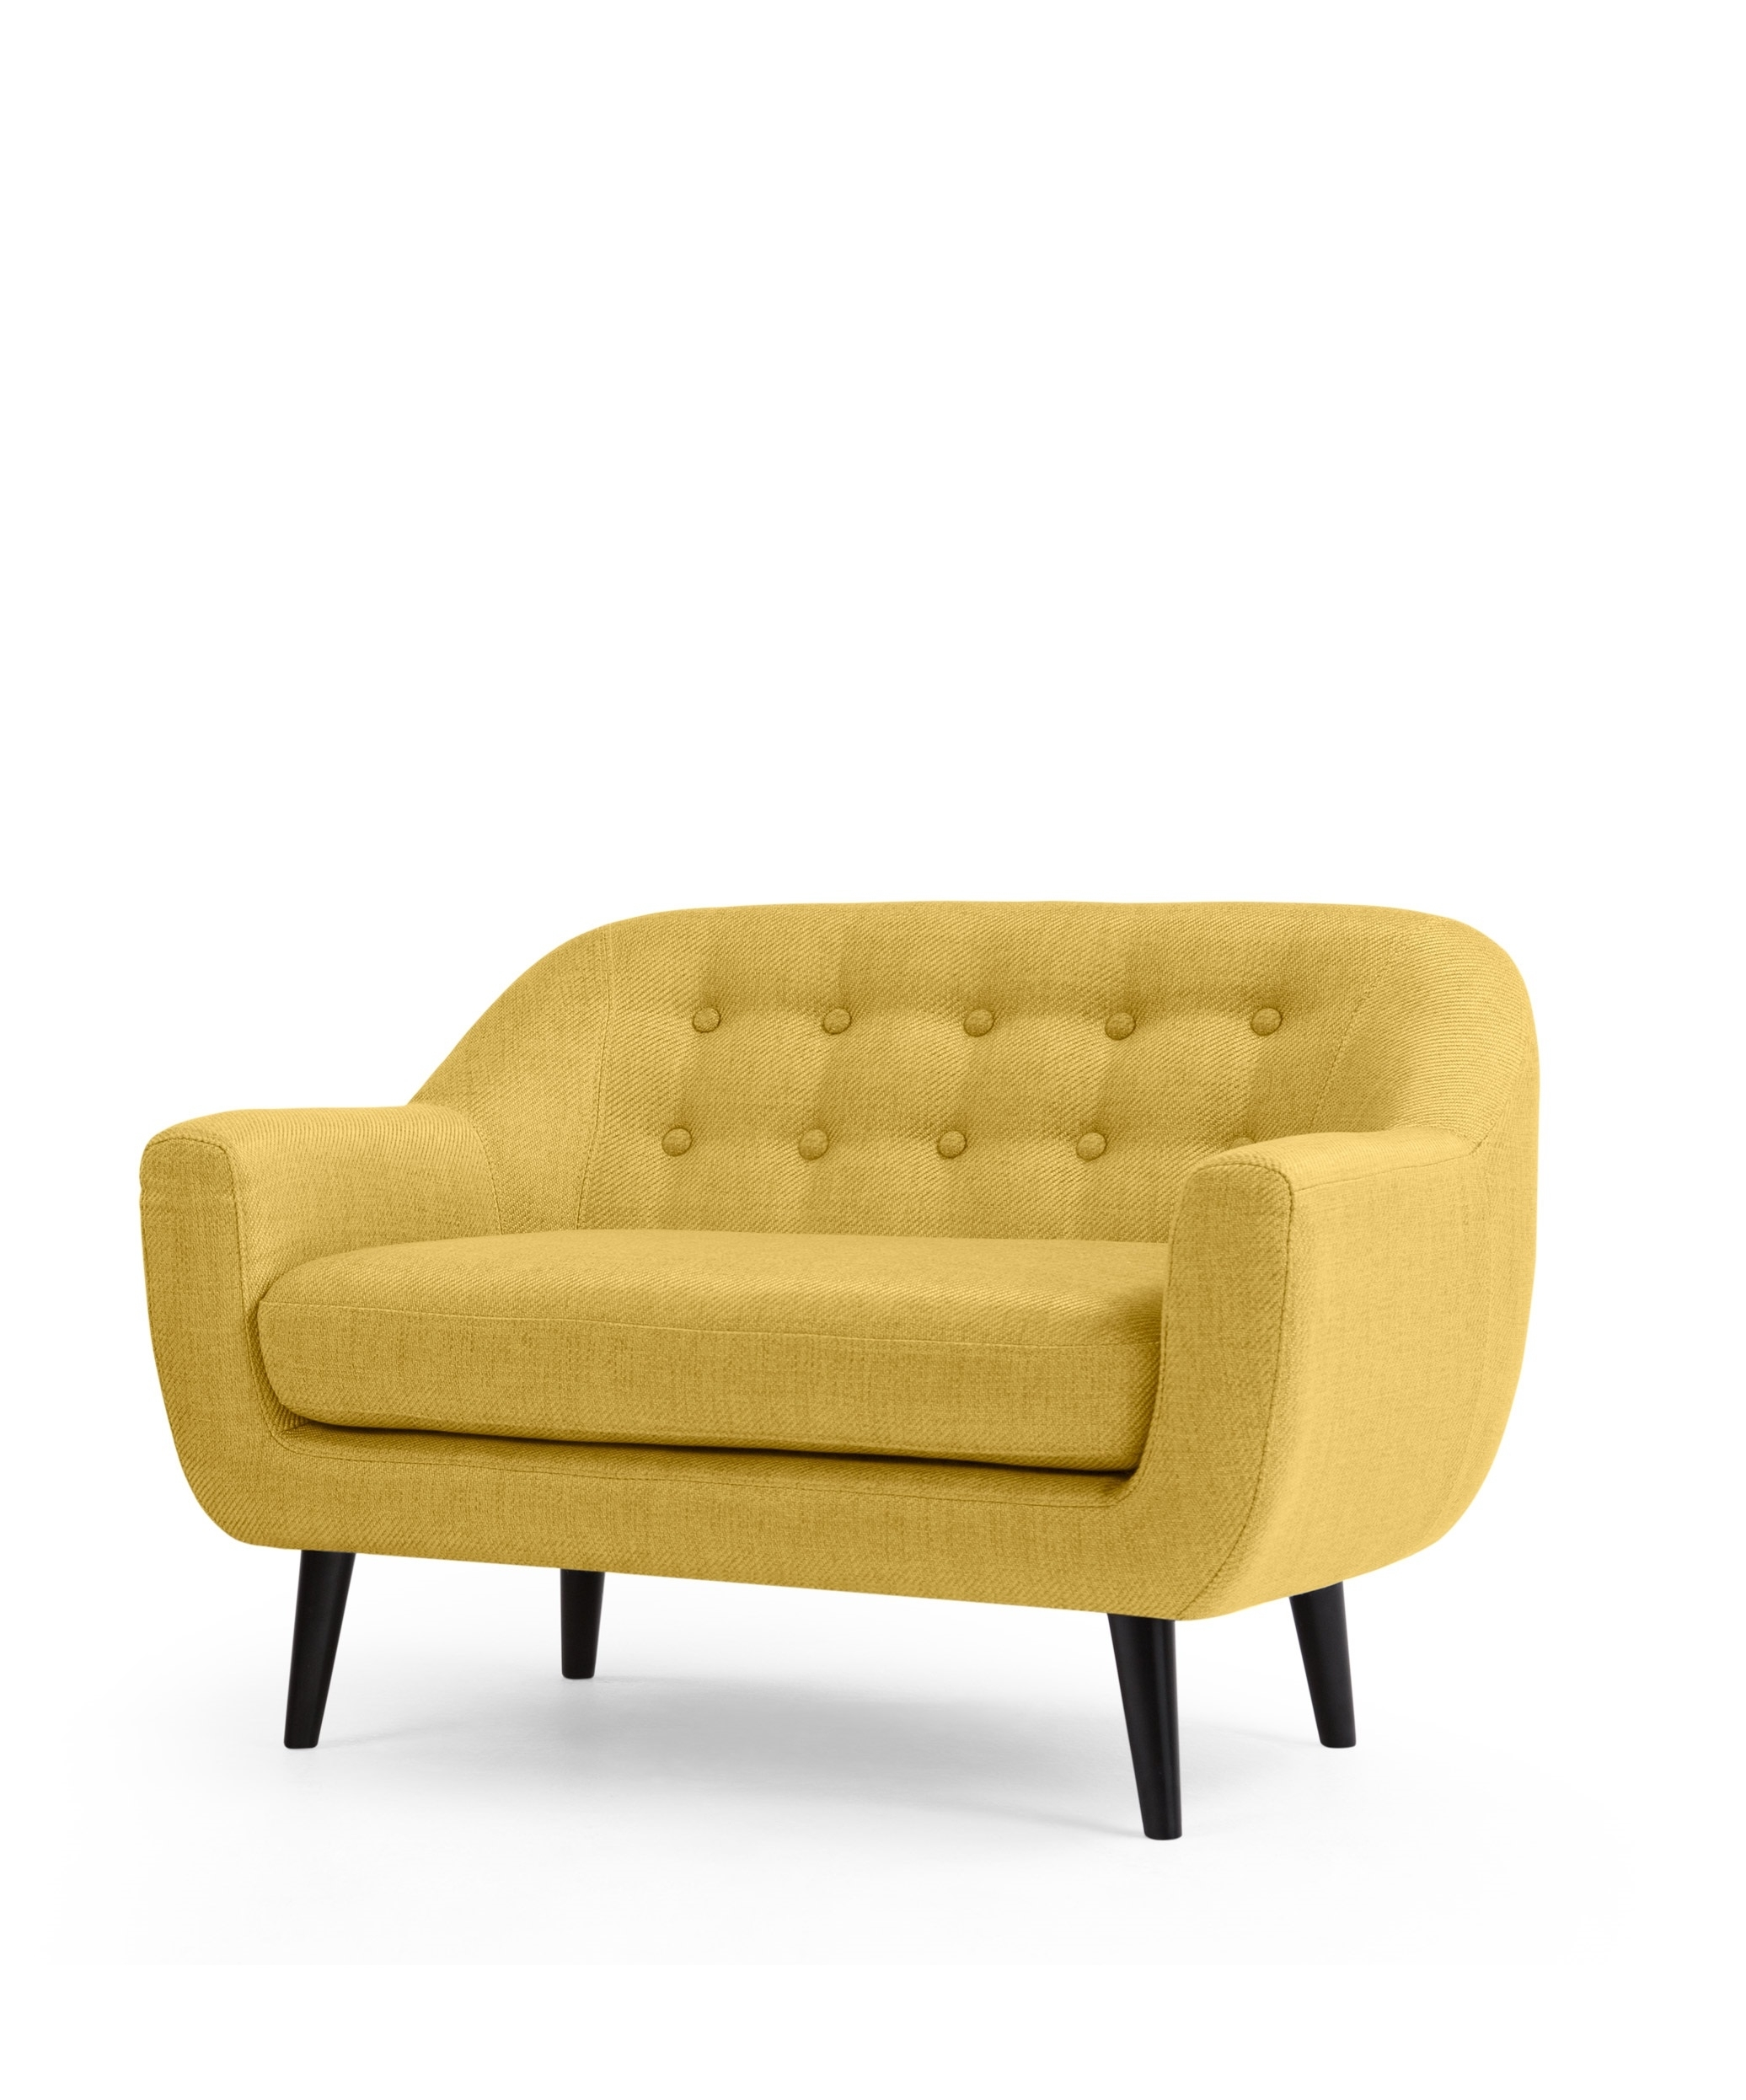 The Mini Ritchie 2 Seater Sofa, In Ochre Yellow. The Ritchie's intended for Mini Sofas (Image 7 of 10)